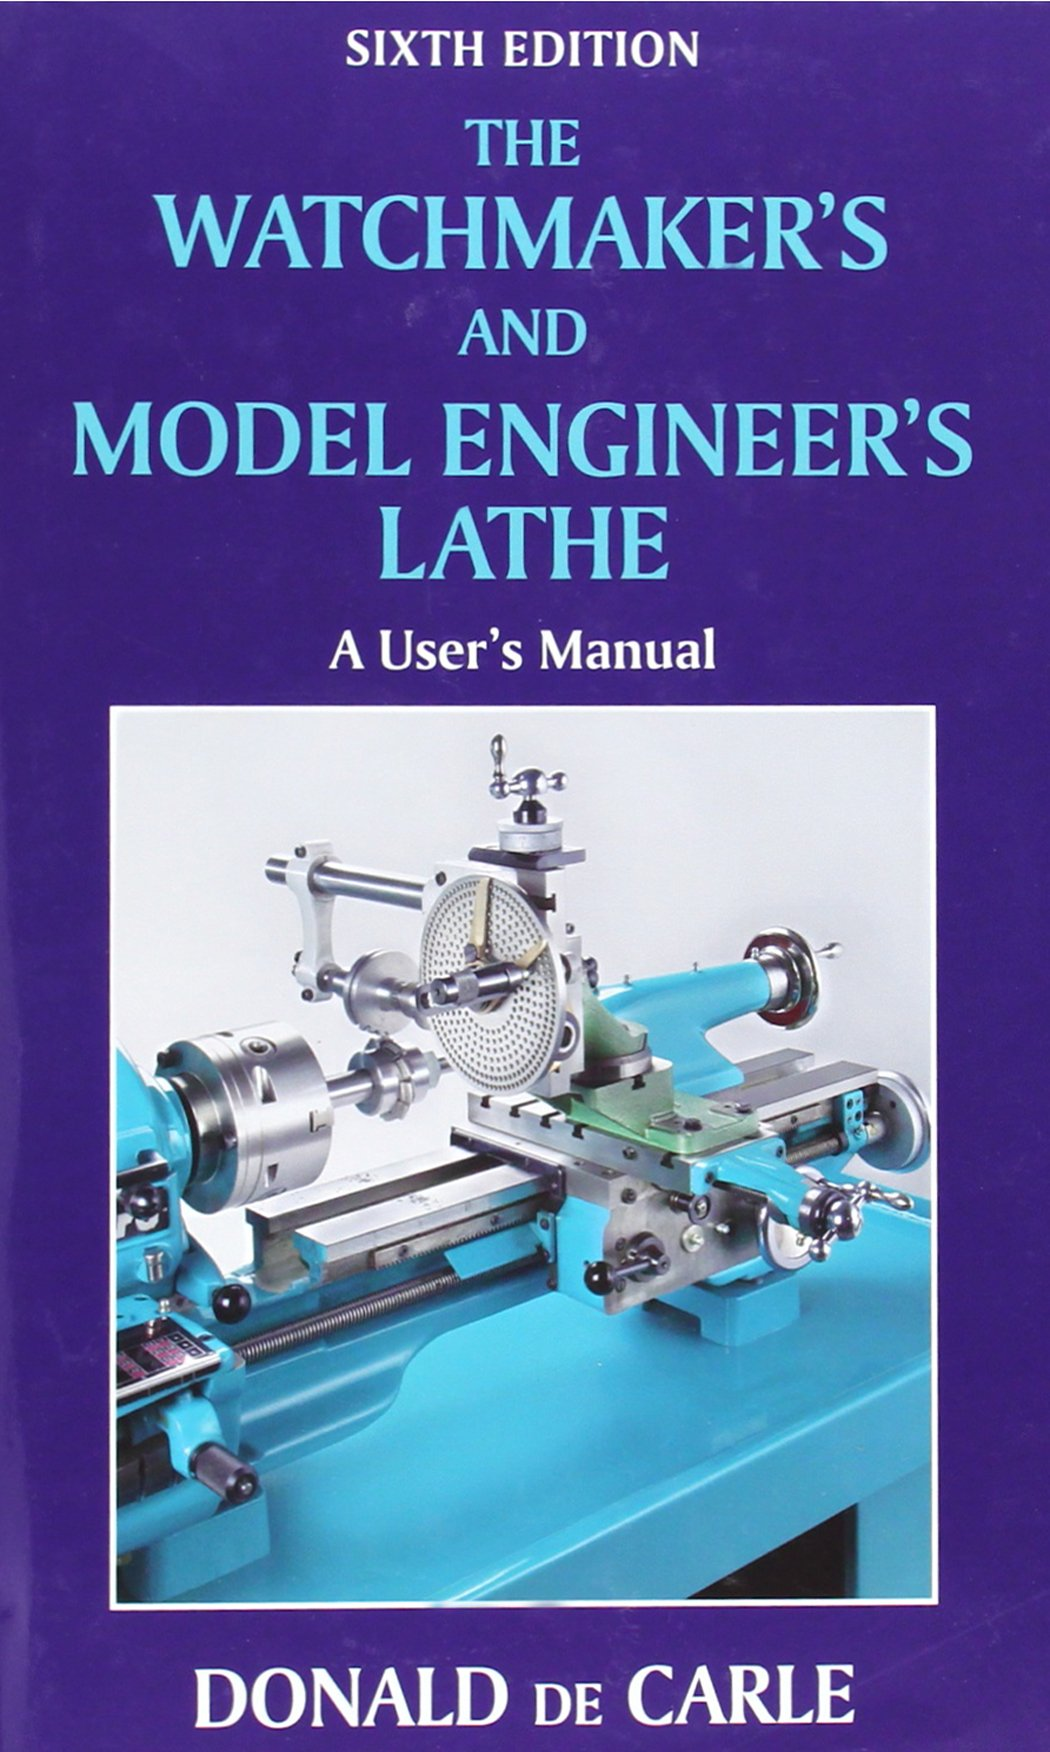 The Watchmaker's and Model Engineer's Lathe: A User's Manual